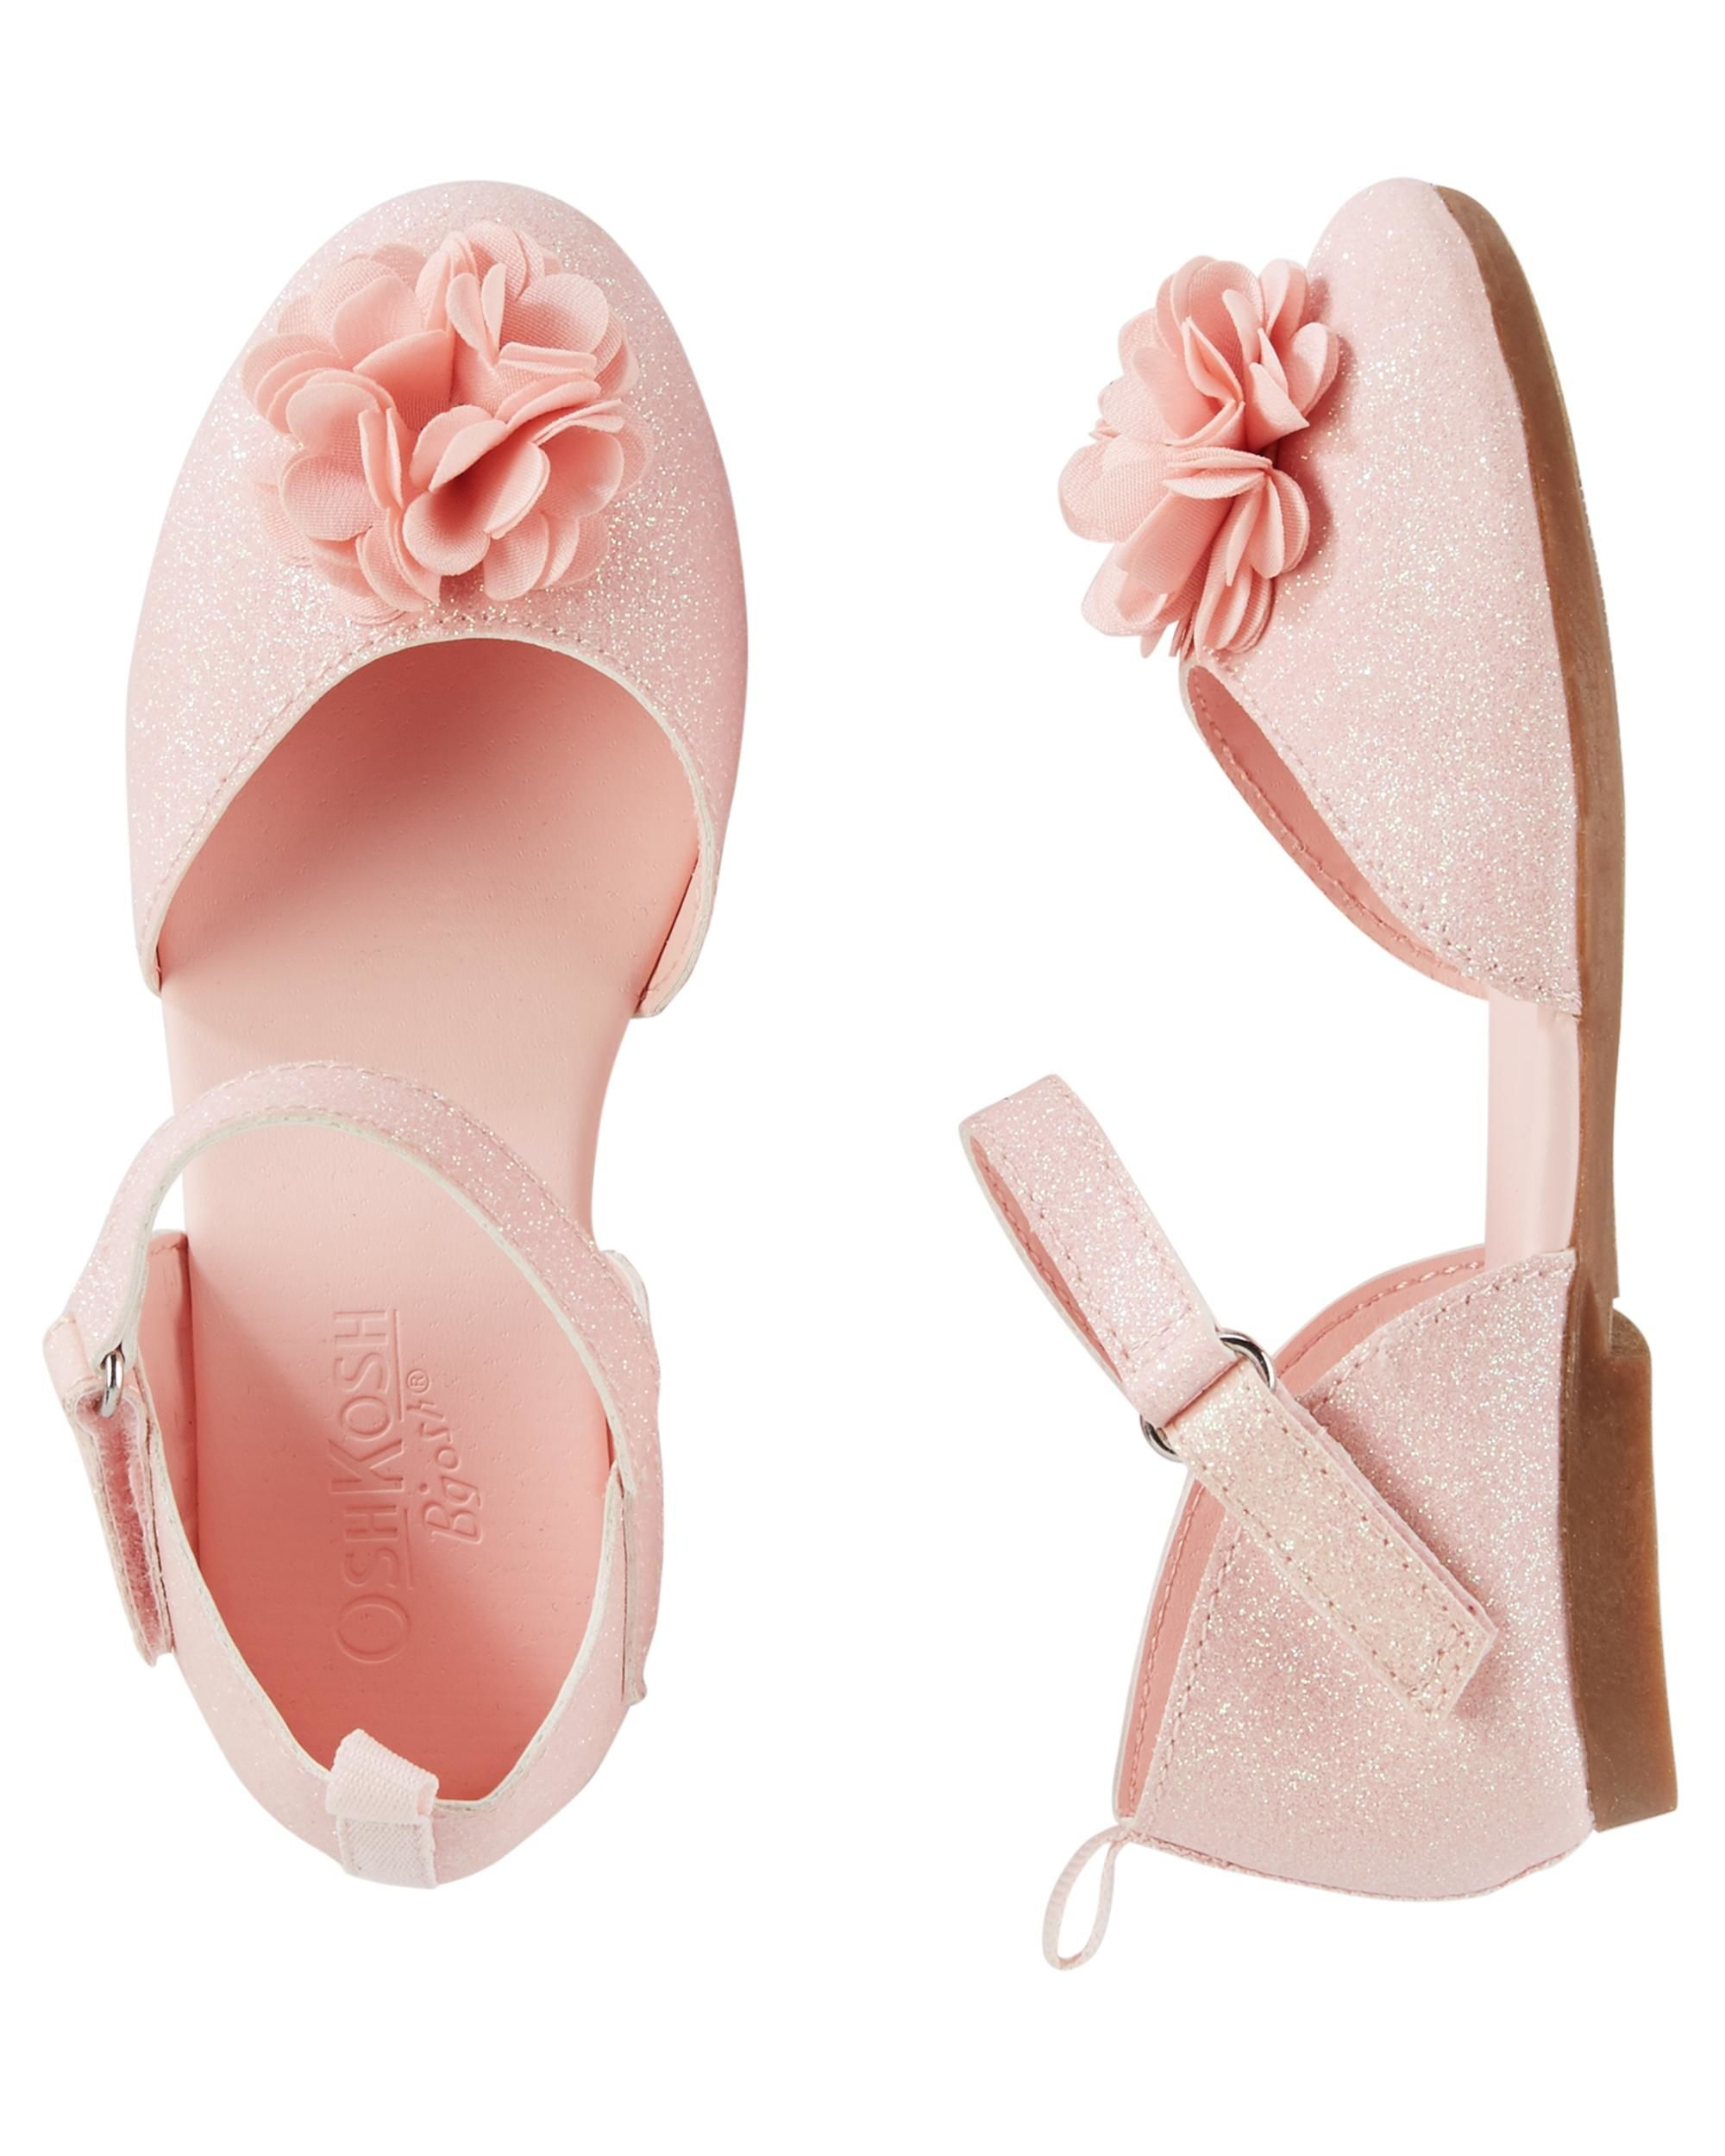 OshKosh Flower Sandals | Carters baby girl, Baby girl shoes and ...